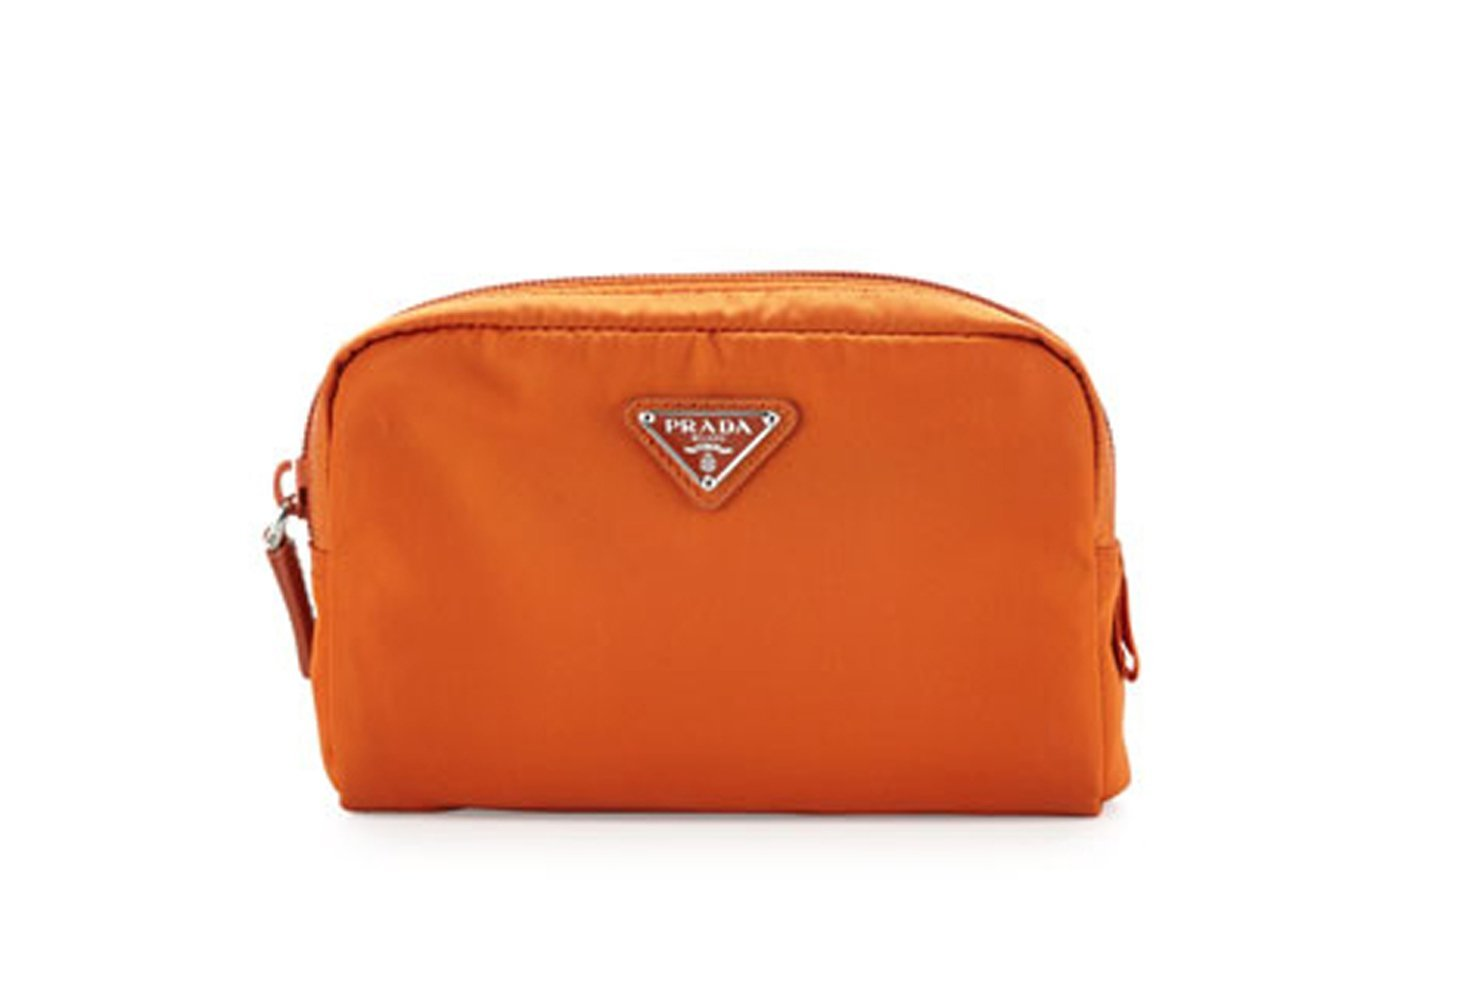 Prada Vela Square Nylon Beauty Bag Cosmetic Makeup Case - Orange Papaya Arancio